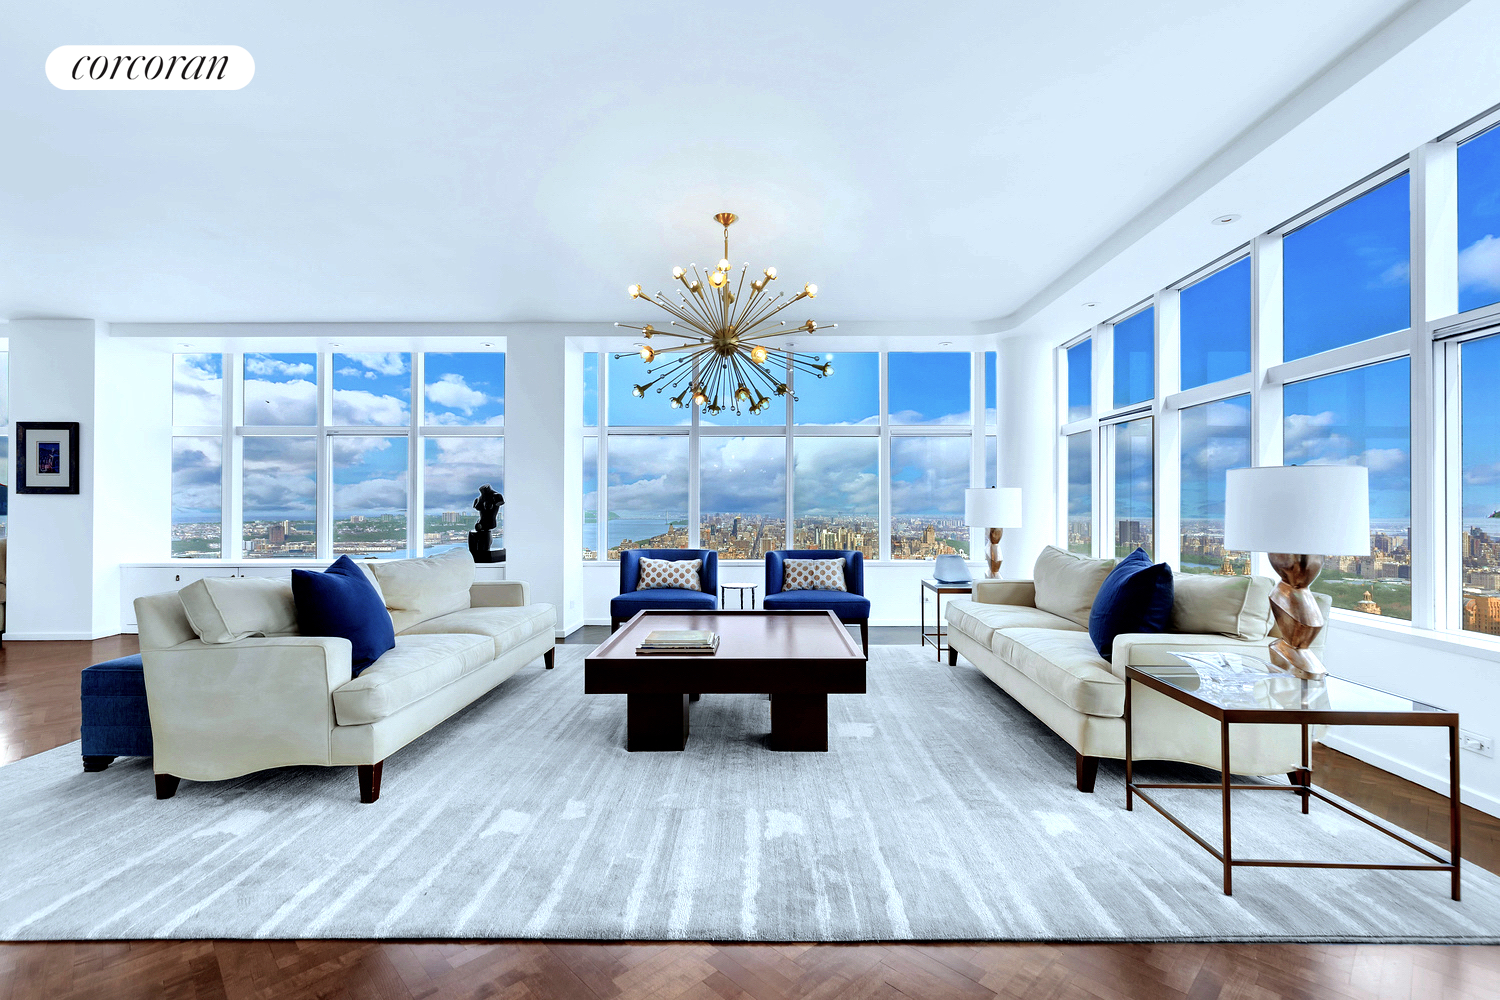 Best views in NYC. All the mystery and the beauty in the world are conveyed by sweeping panoramas of Central Park, a broad expense of Hudson River up to the GW Bridge, the iridescent 5th Avenue skyline and the glittering verticality of midtown Manhattan from an exquisitely designed 4 plus bedroom, 3600sf penthouse. Floor to ceiling windows comprise the north, east and west facades of this fabulous residence located in a premier white glove condominium adjacent to Lincoln Center and its abundance of cultural venues at the dynamic center of the Upper Westside. A generous gallery opens into 70 feet of knockout City and Park views encompassing a 38 foot living room and 20 foot dining room. An enchanting eat-in kitchen fabricated by Liecht with custom cabinetry, sourced stone countertops and top-of-the-line appliances overlooks Central Park. The enormous master bedroom, with a superb ensuite bath and dressing room, has broad aerial views up and down the Hudson River. A second master bedroom with dazzling Park and River vistas is now used as a home office. There are two additional bedrooms with sensational views and a total of 4 full baths. Amenities include central air conditioning, a separate laundry room and myriad walk in closets. One of Manhattan's finest condominiums, this full-service building provides 24-hour doorman and concierge service, a state of the art fitness center, a superb swimming pool, large events room with a fully equipped kitchen and direct access to Lincoln Center. After taking in a symphonic sunset from this enchanting space, you may secretly believe, like John Updike, that people living anywhere else have to be, in some sense, kidding.